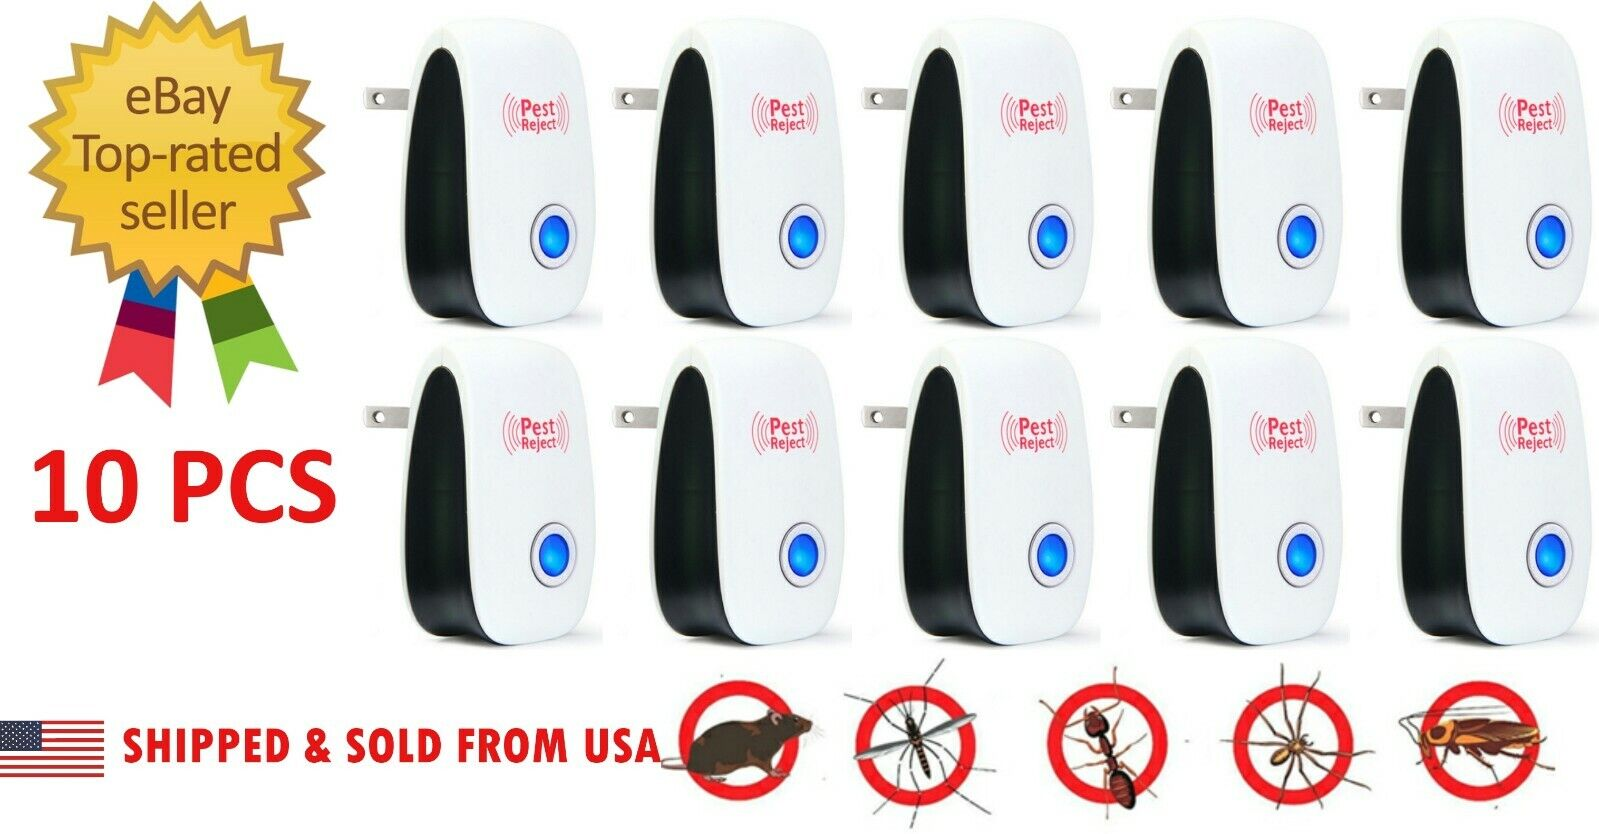 10 PC 2020 Ultrasonic Pest Repeller Control Electronic Repel